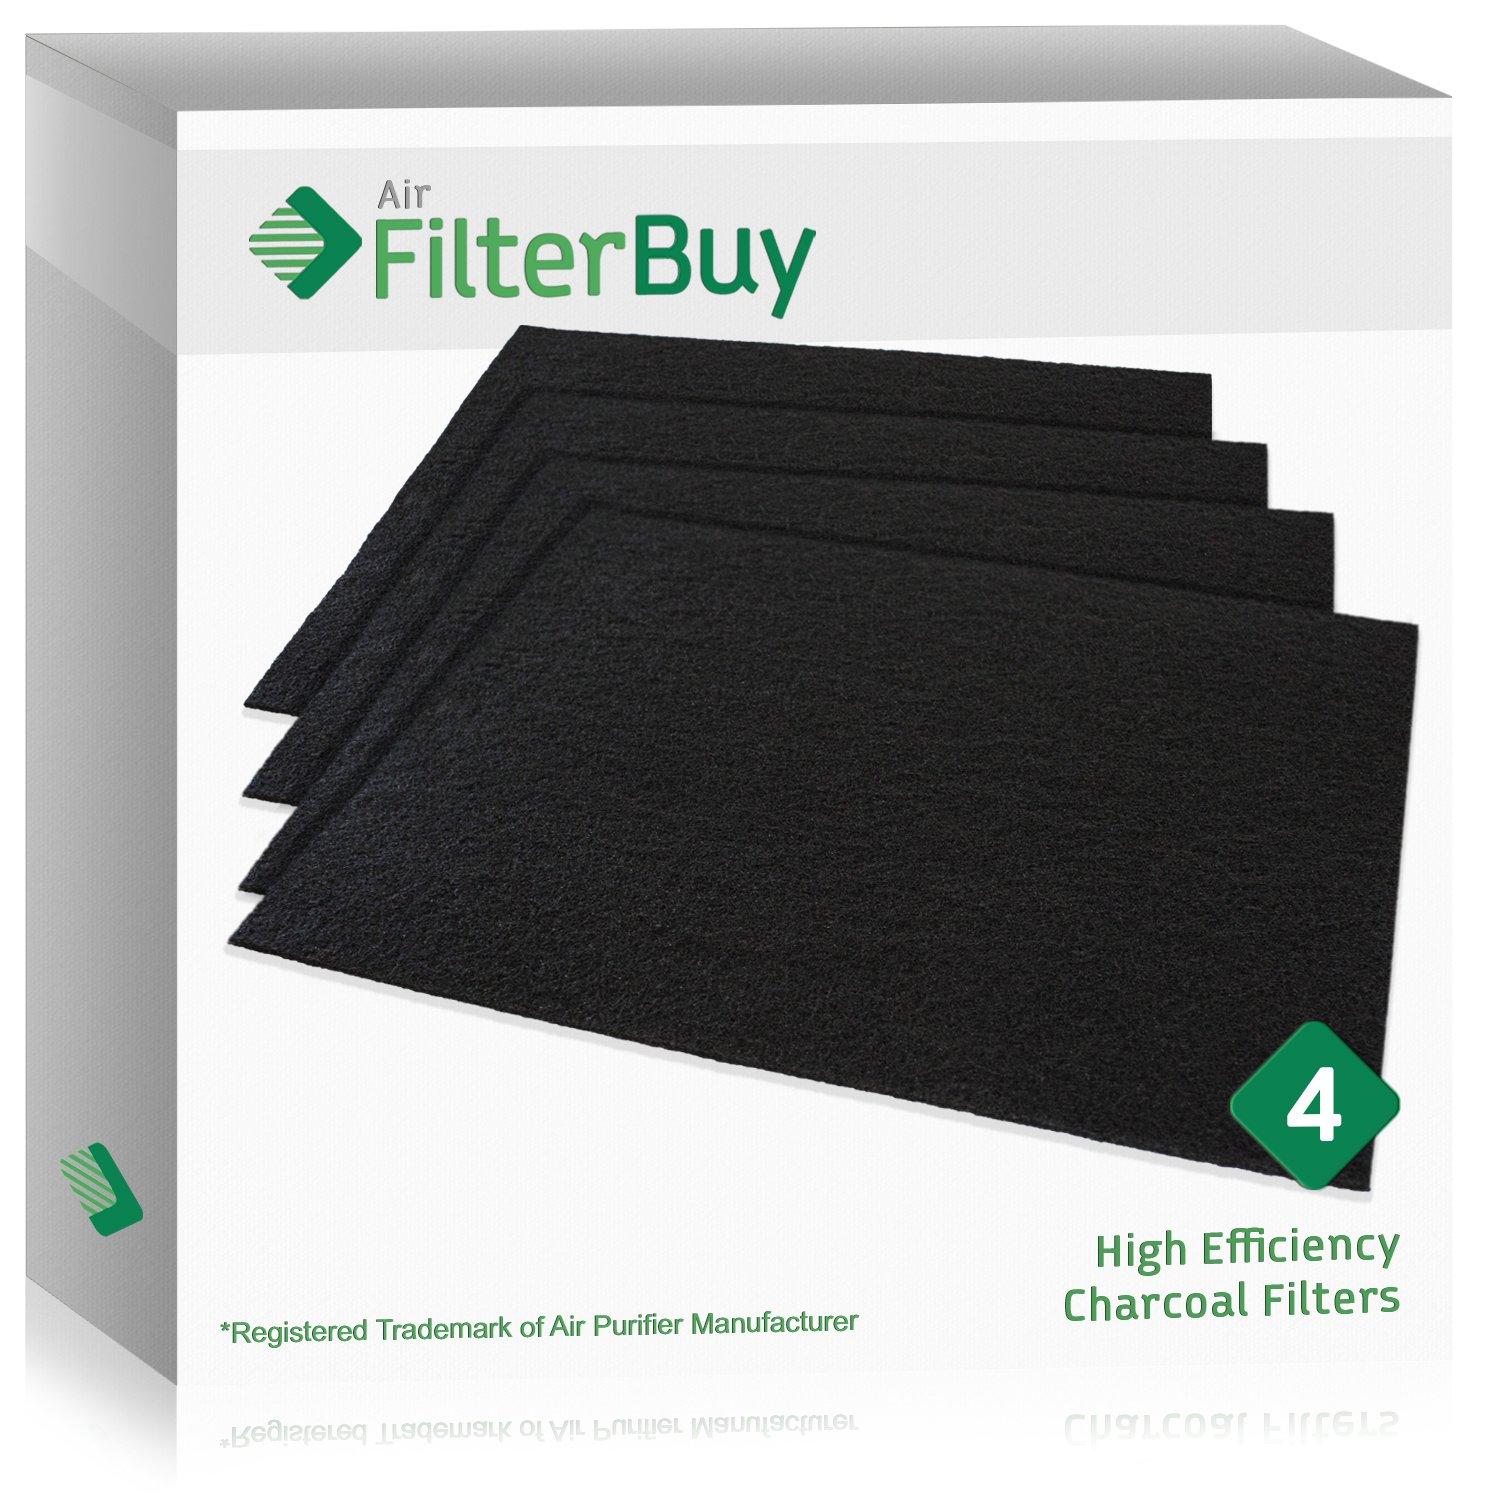 FilterBuy 4 Carbon Filters. 19.5x17 Cut to Fit Charcoal Filters. Designed by to replace Air Purifier Pre Filters.